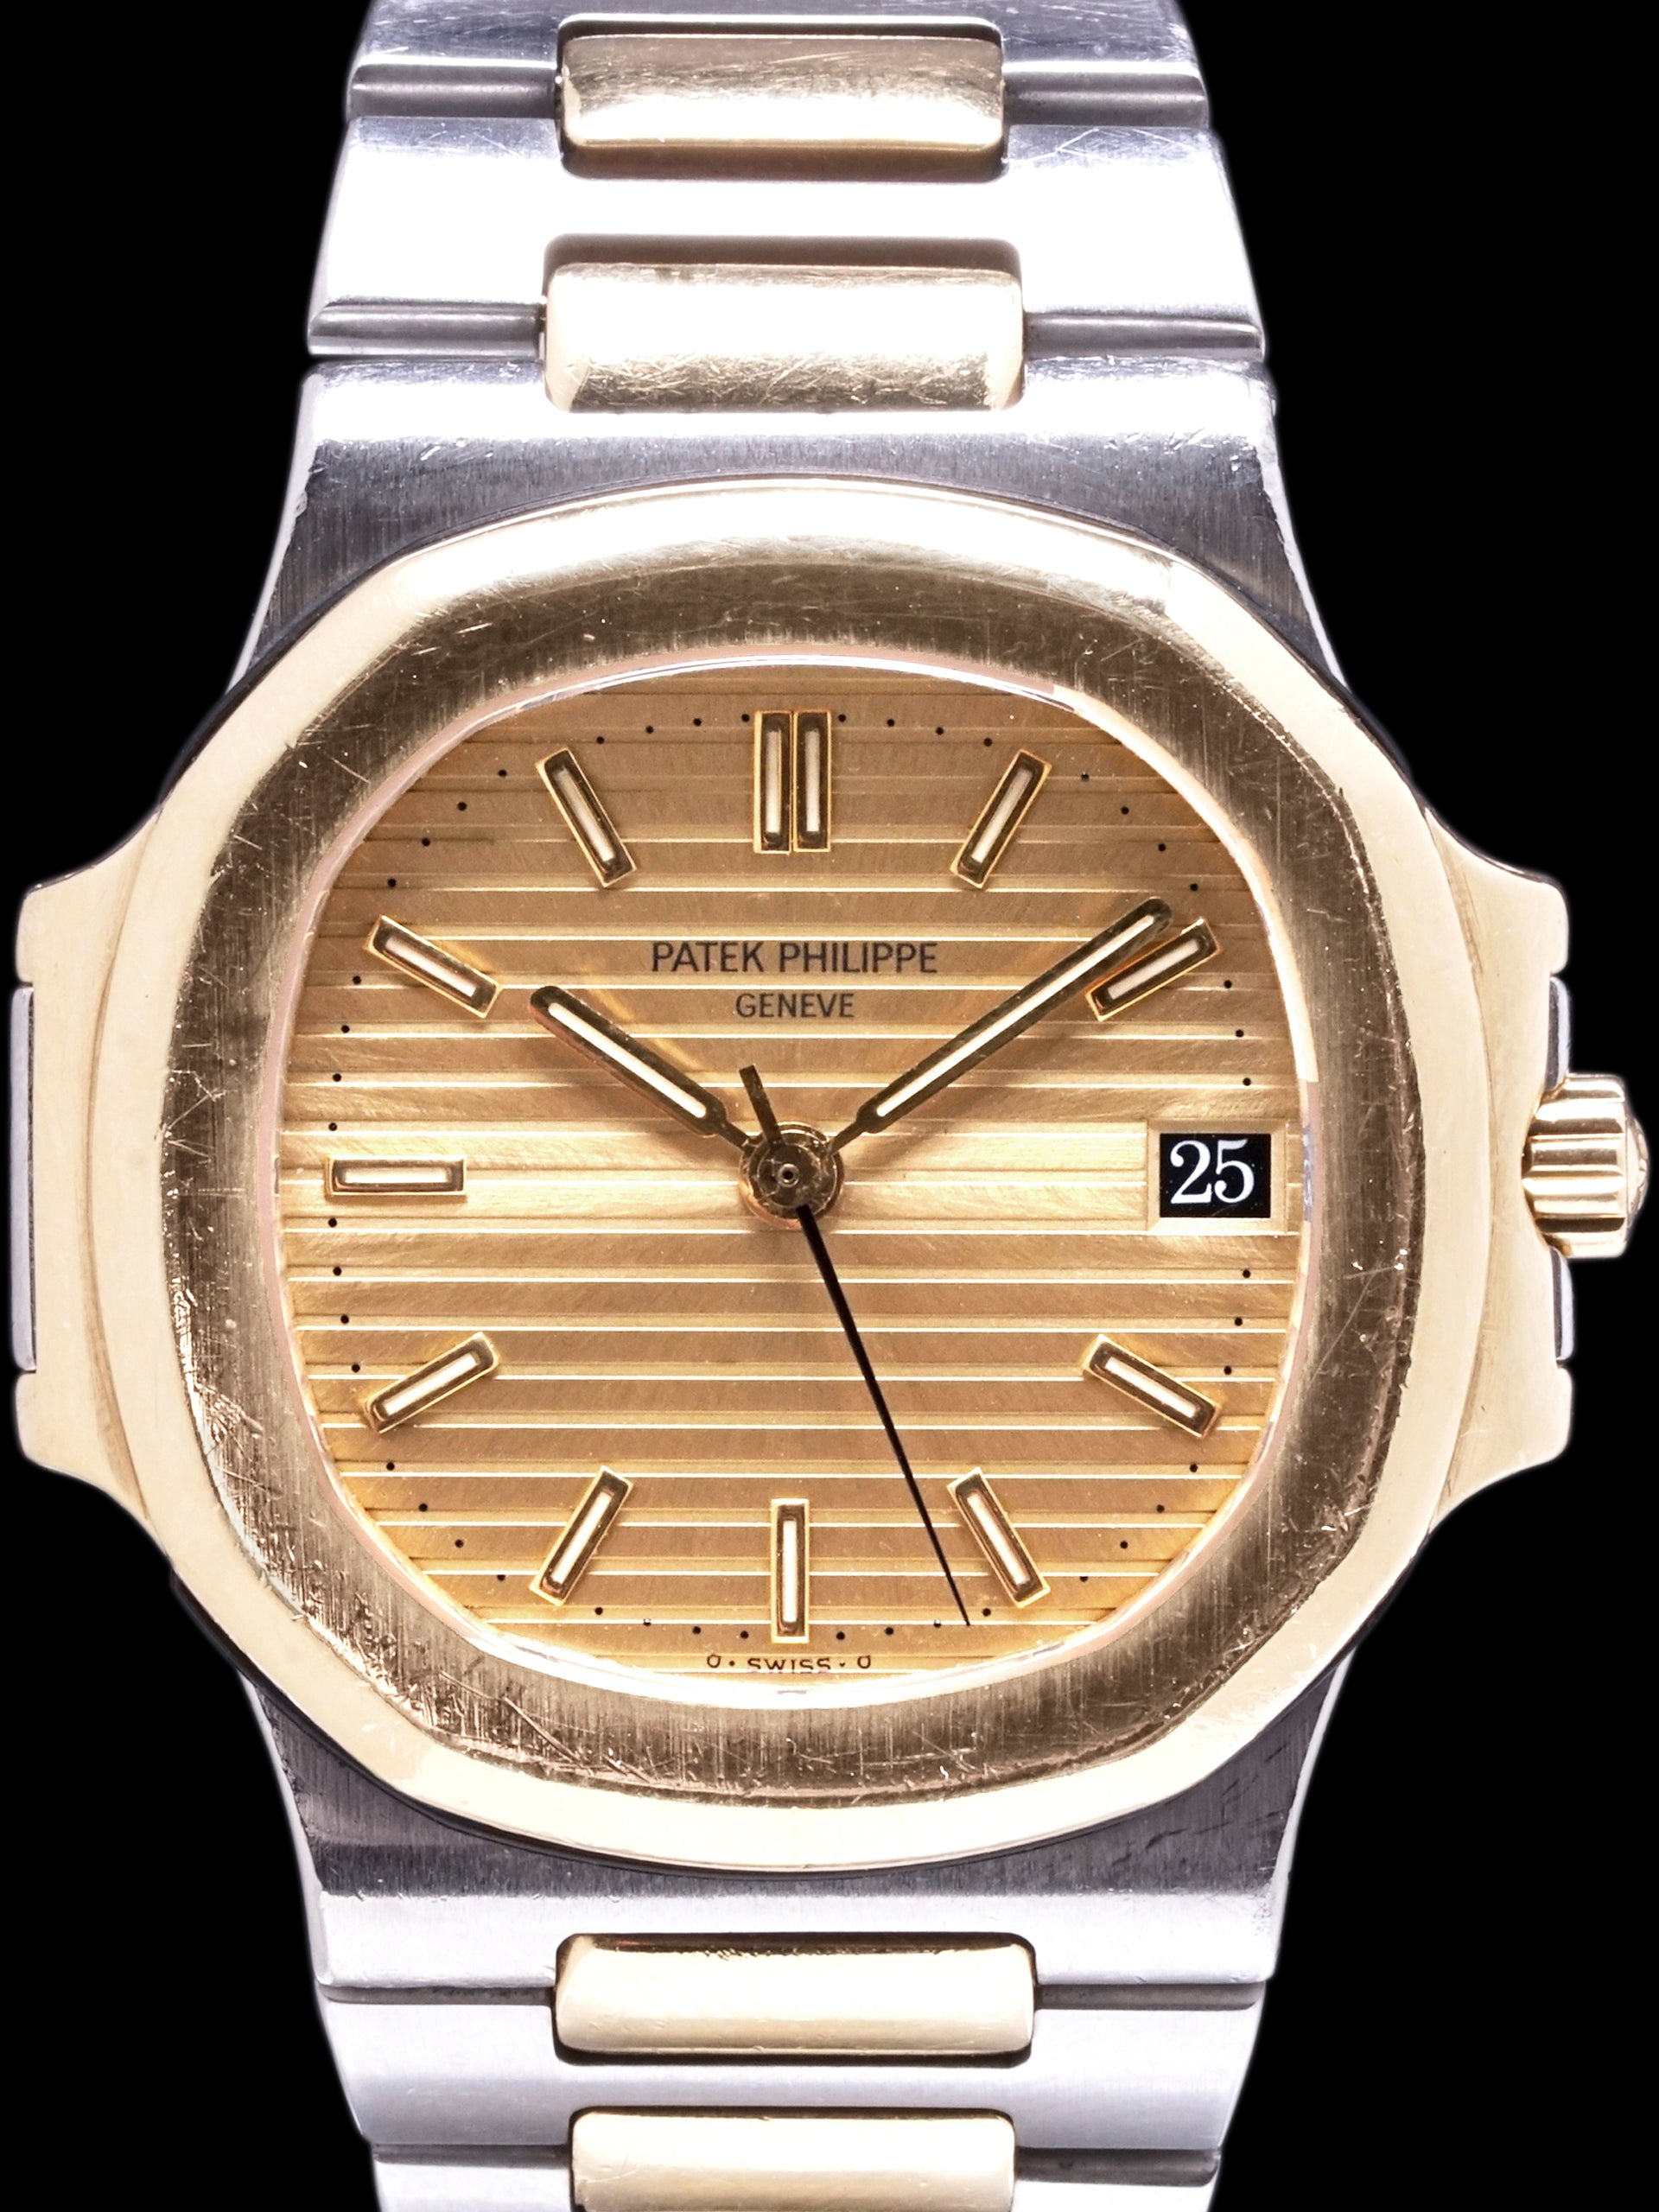 1988 Patek Philippe Two-Tone Nautilus (Ref. 3800/1) W/ Extract From Archive